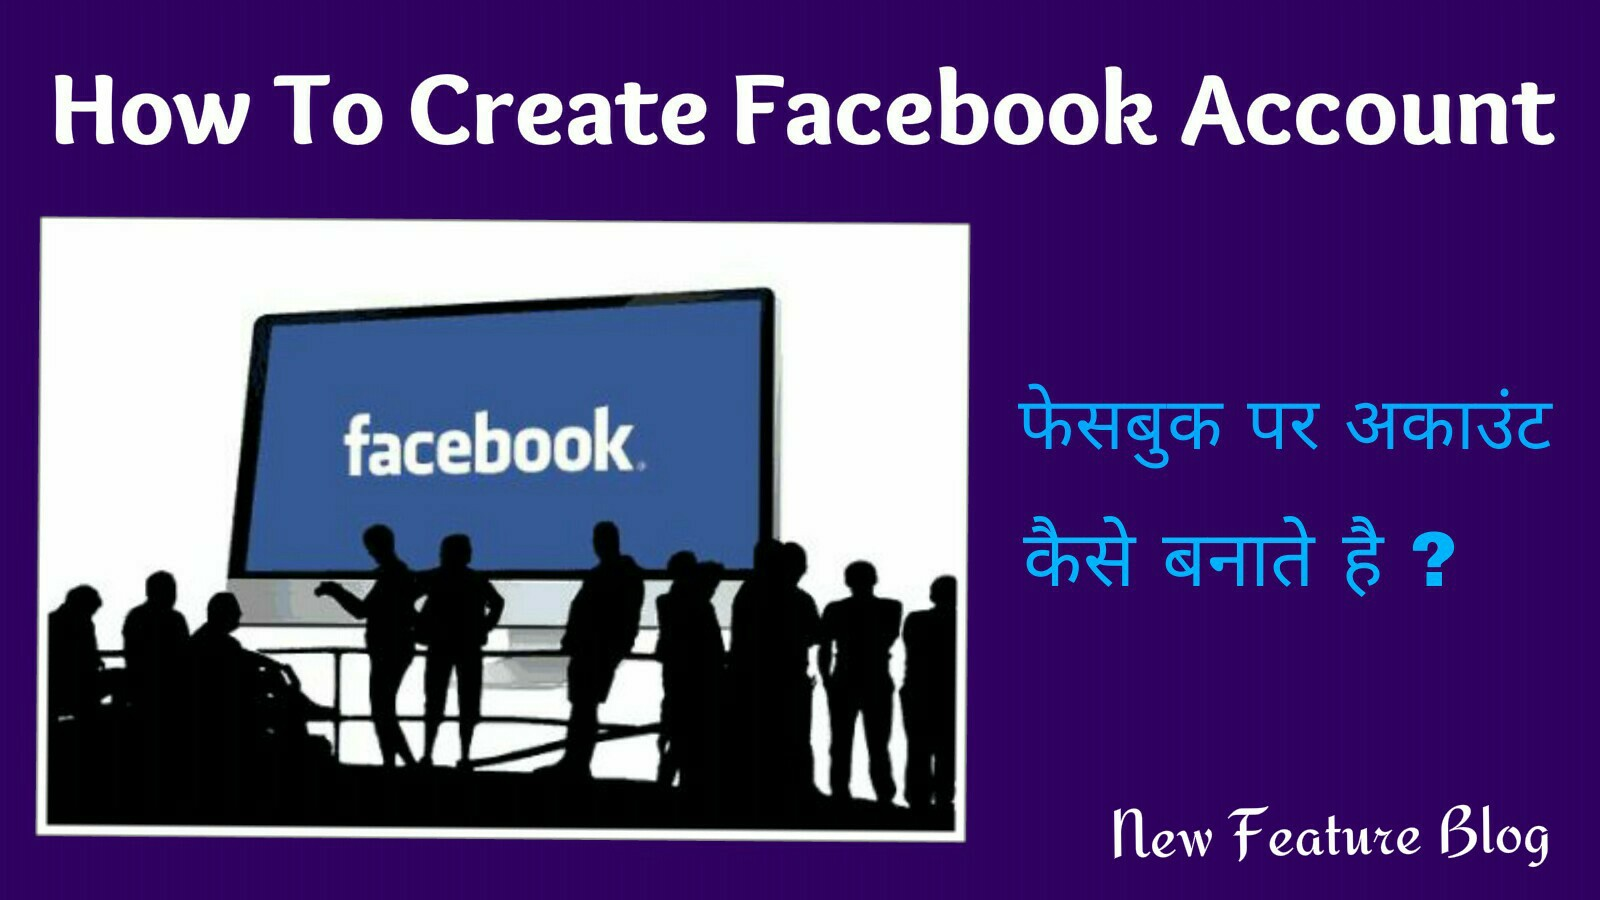 How to create Facebook account